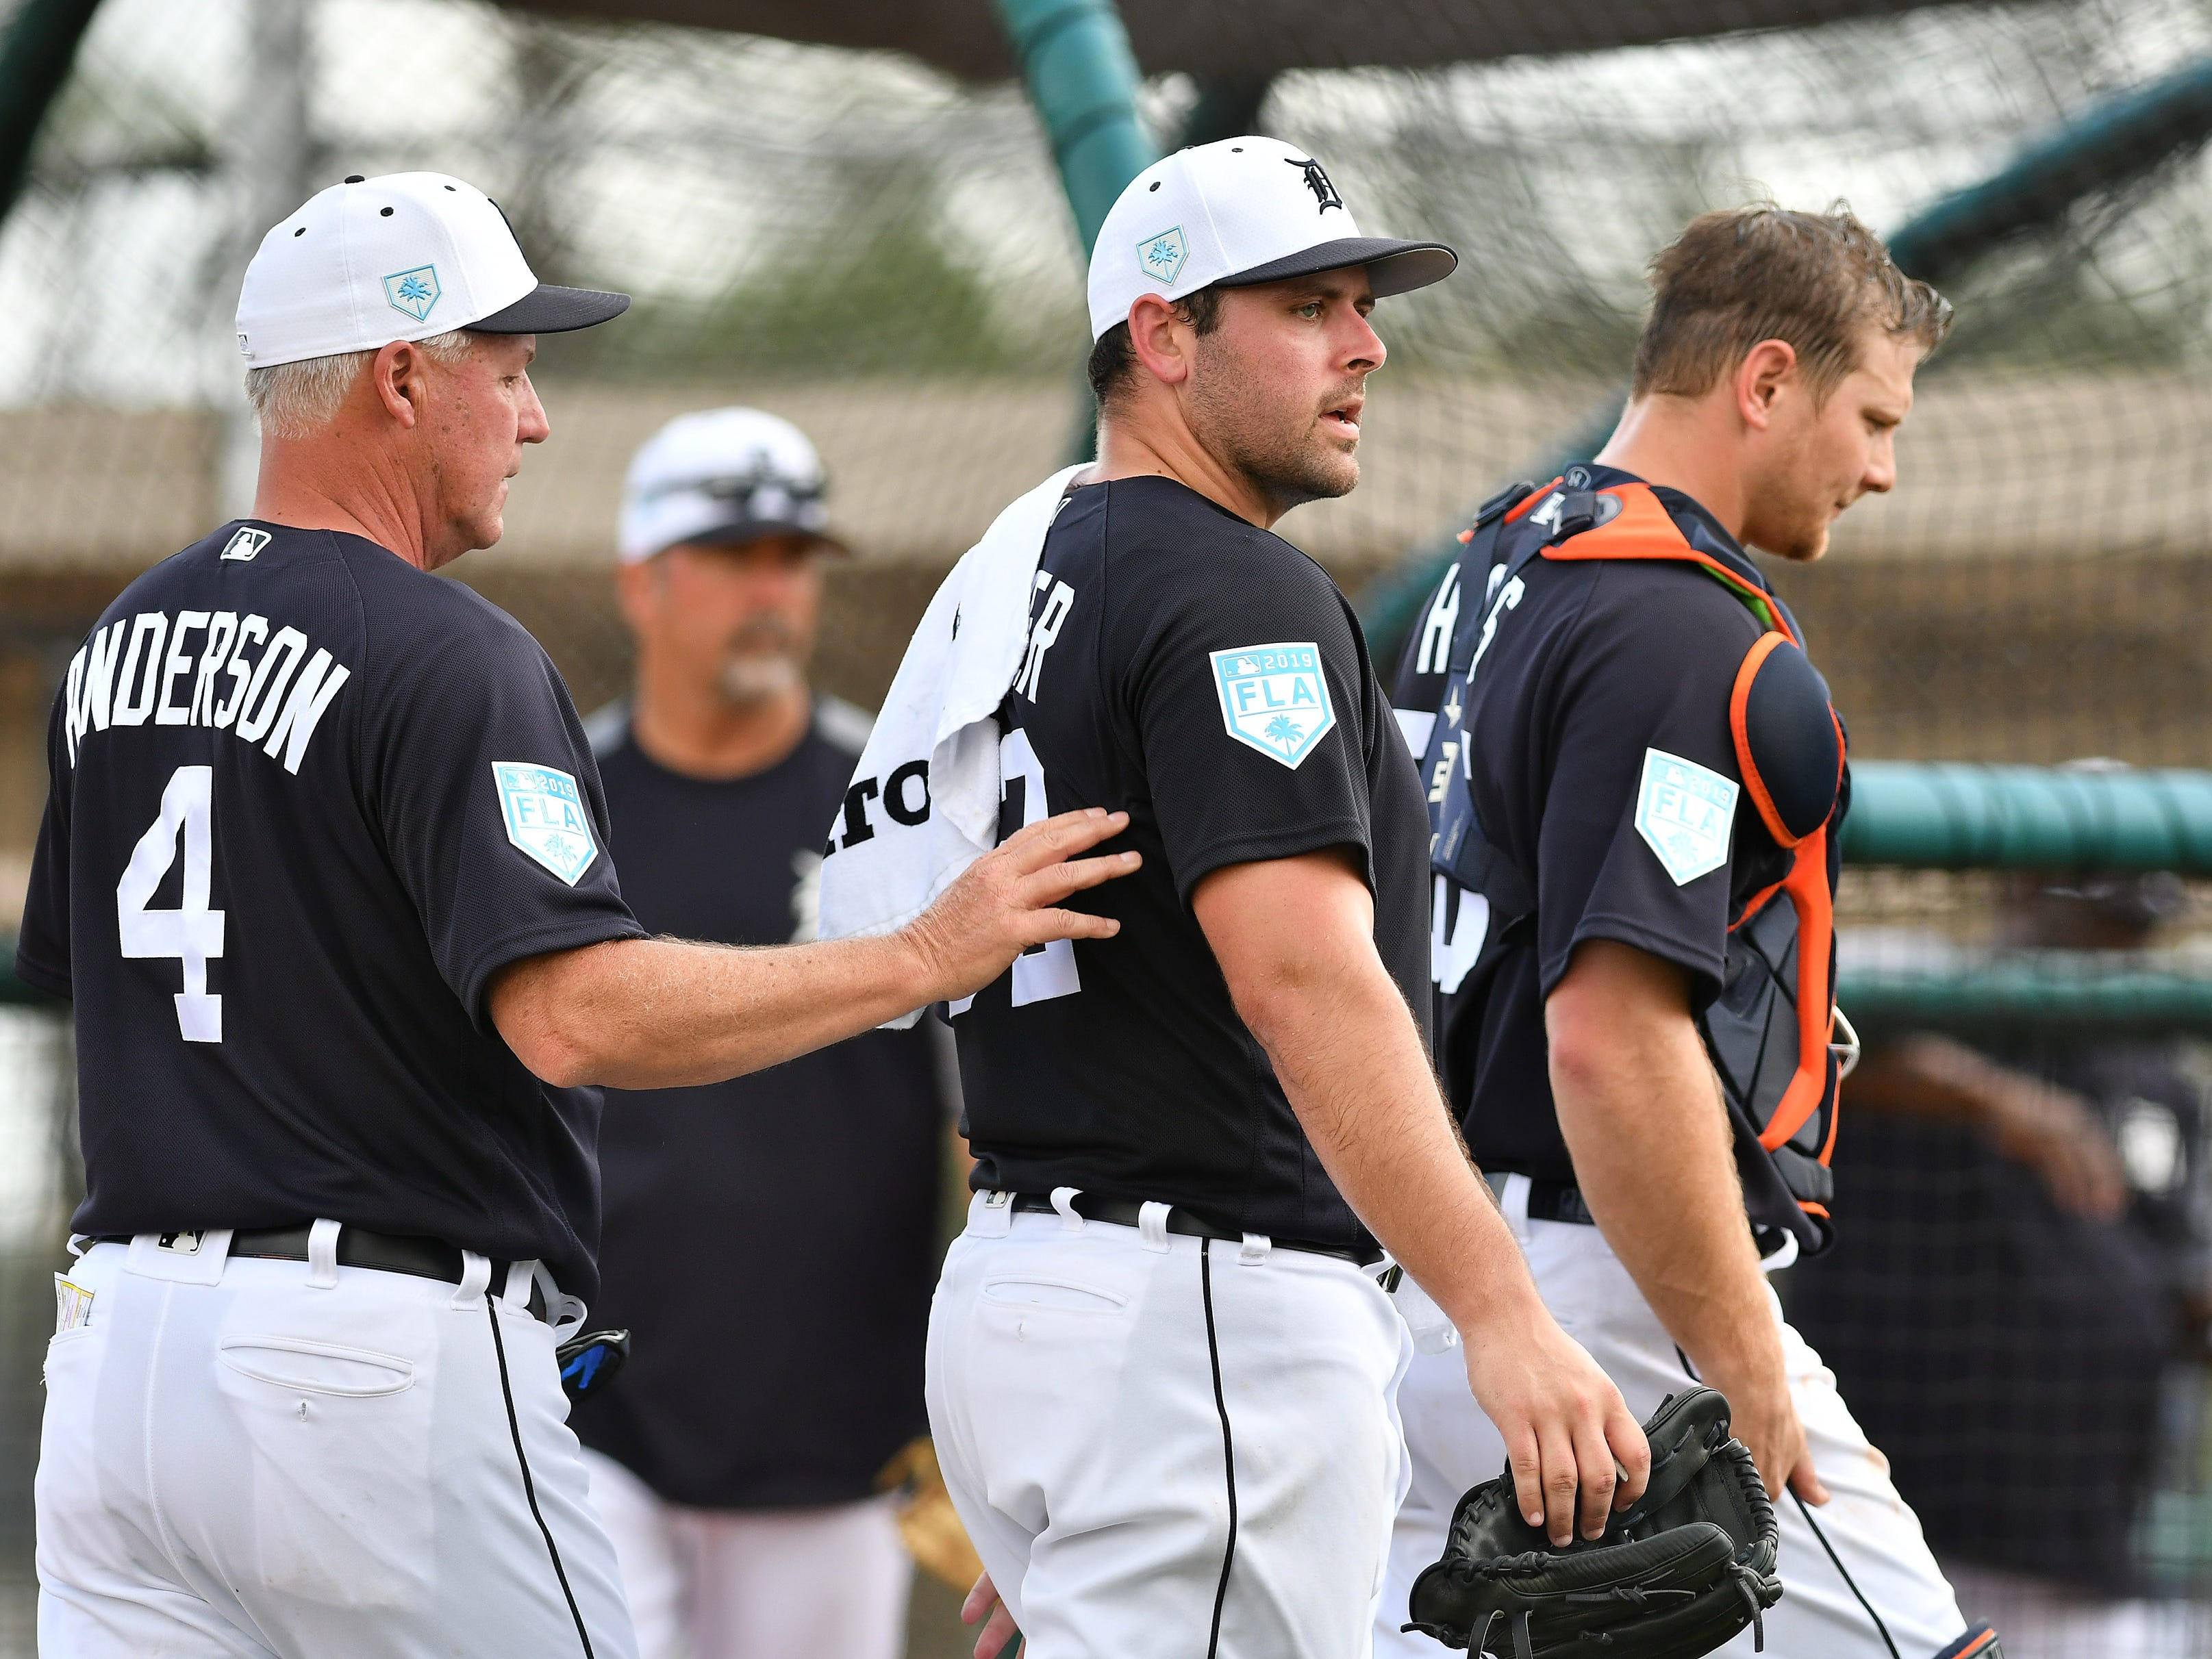 From left, Tigers pitching coach Rick Anderson, pitcher Michael Fulmer and catcher John Hicks walk off the field after Fulmer's live batting session.